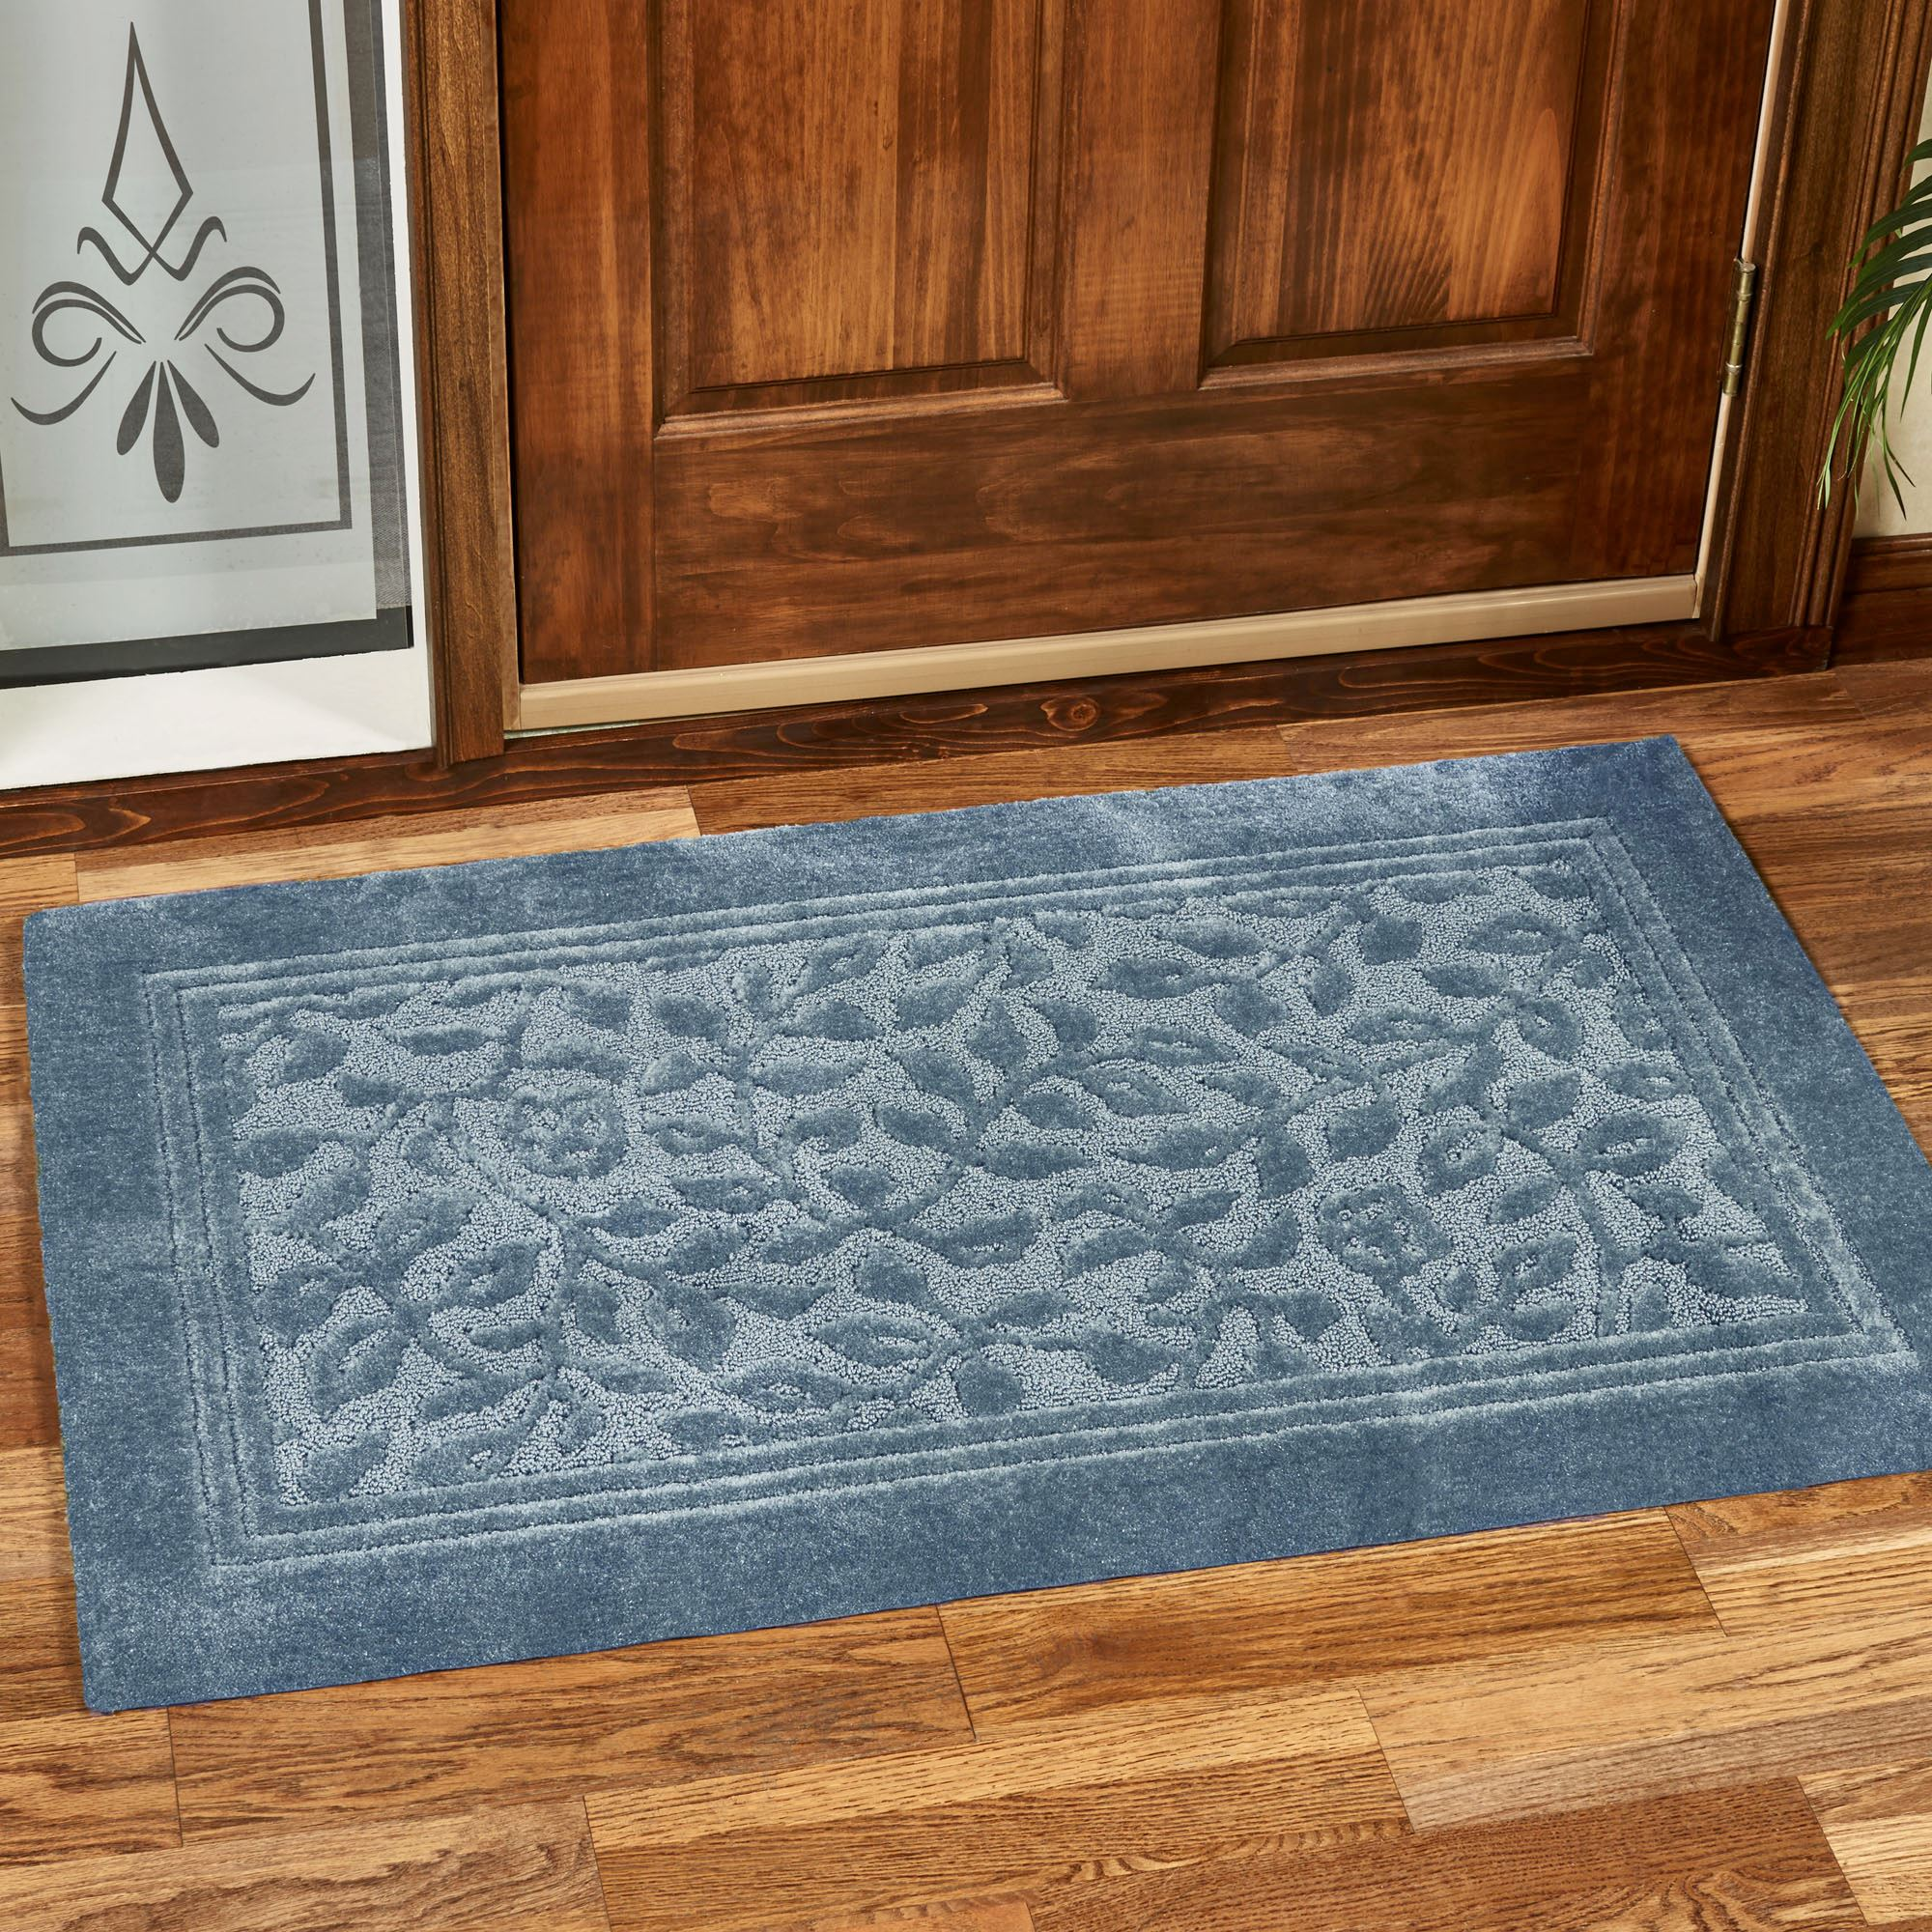 Wellington Super Soft Nylon Bath Rug Click To Expand